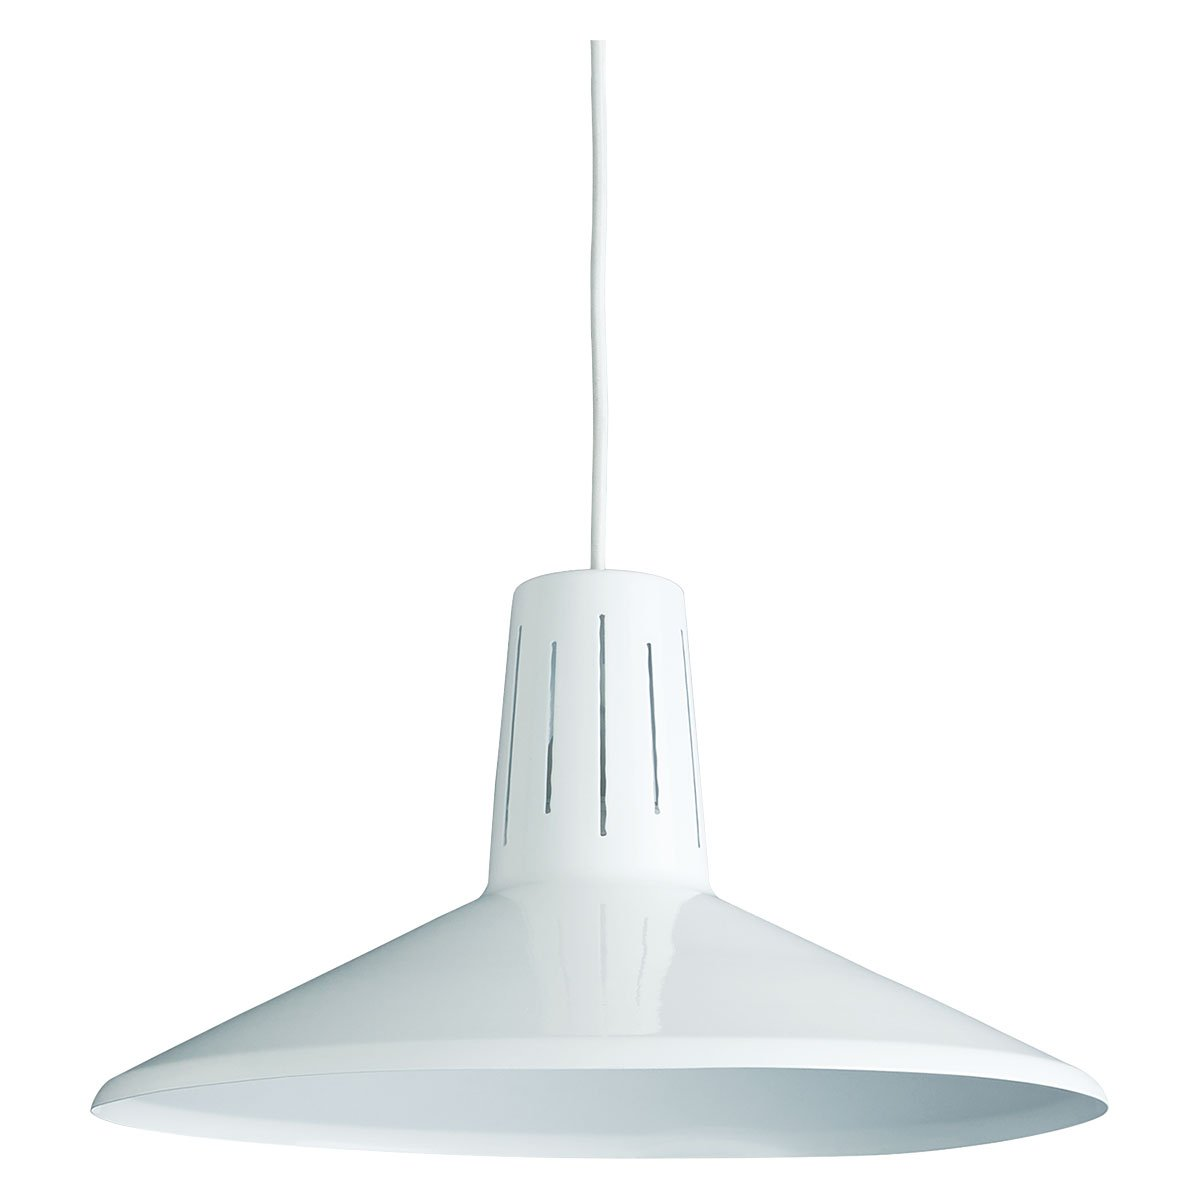 image-Seasalter White Metal Easy-To-Fit Ceiling Shade, White